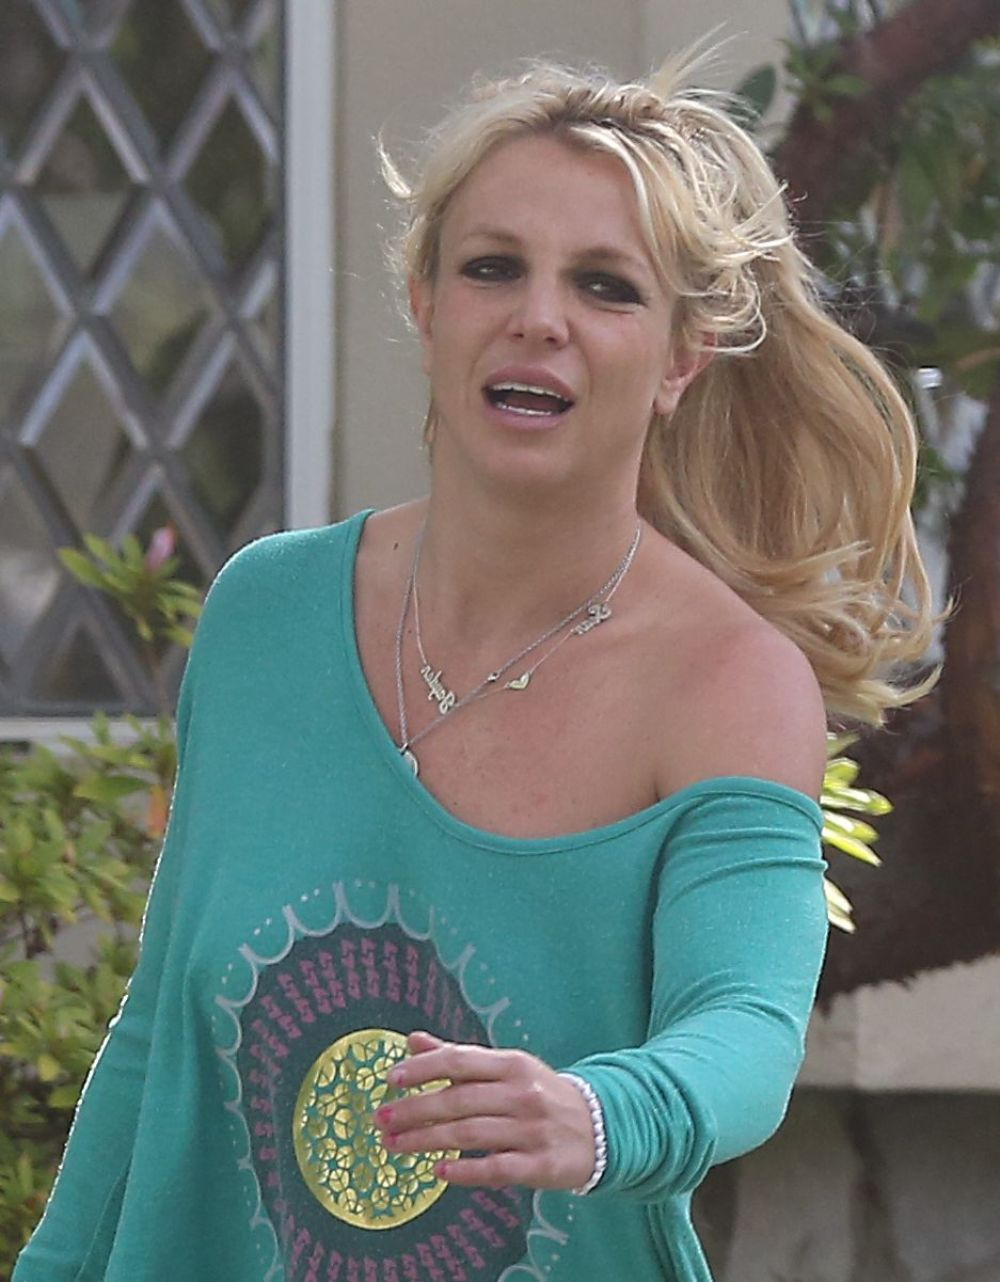 britney-spears-out-in-los-angeles-03-20-